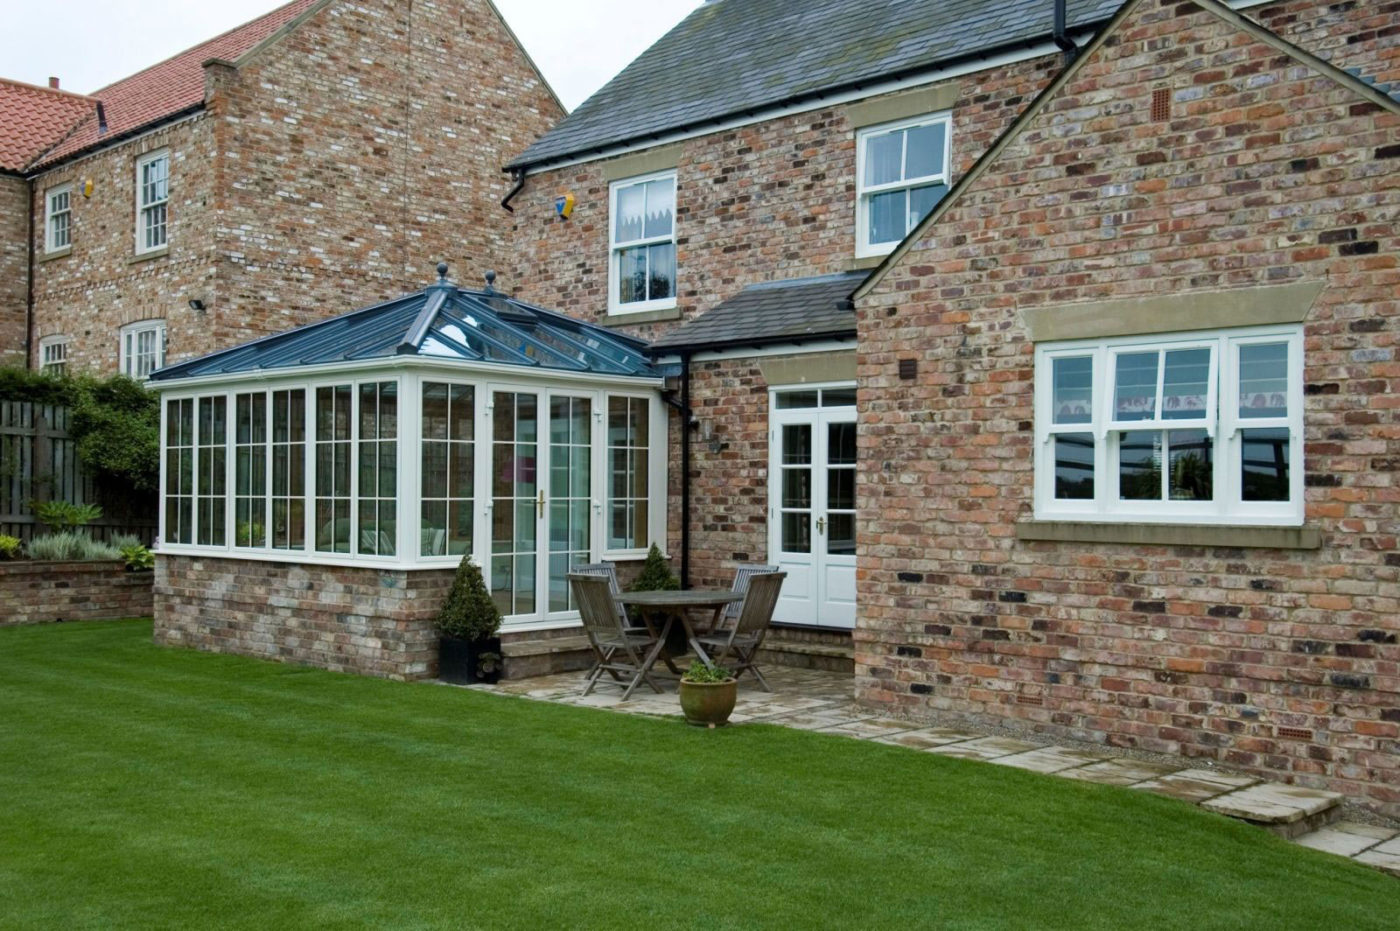 double glazing replacement cost hoddesdon